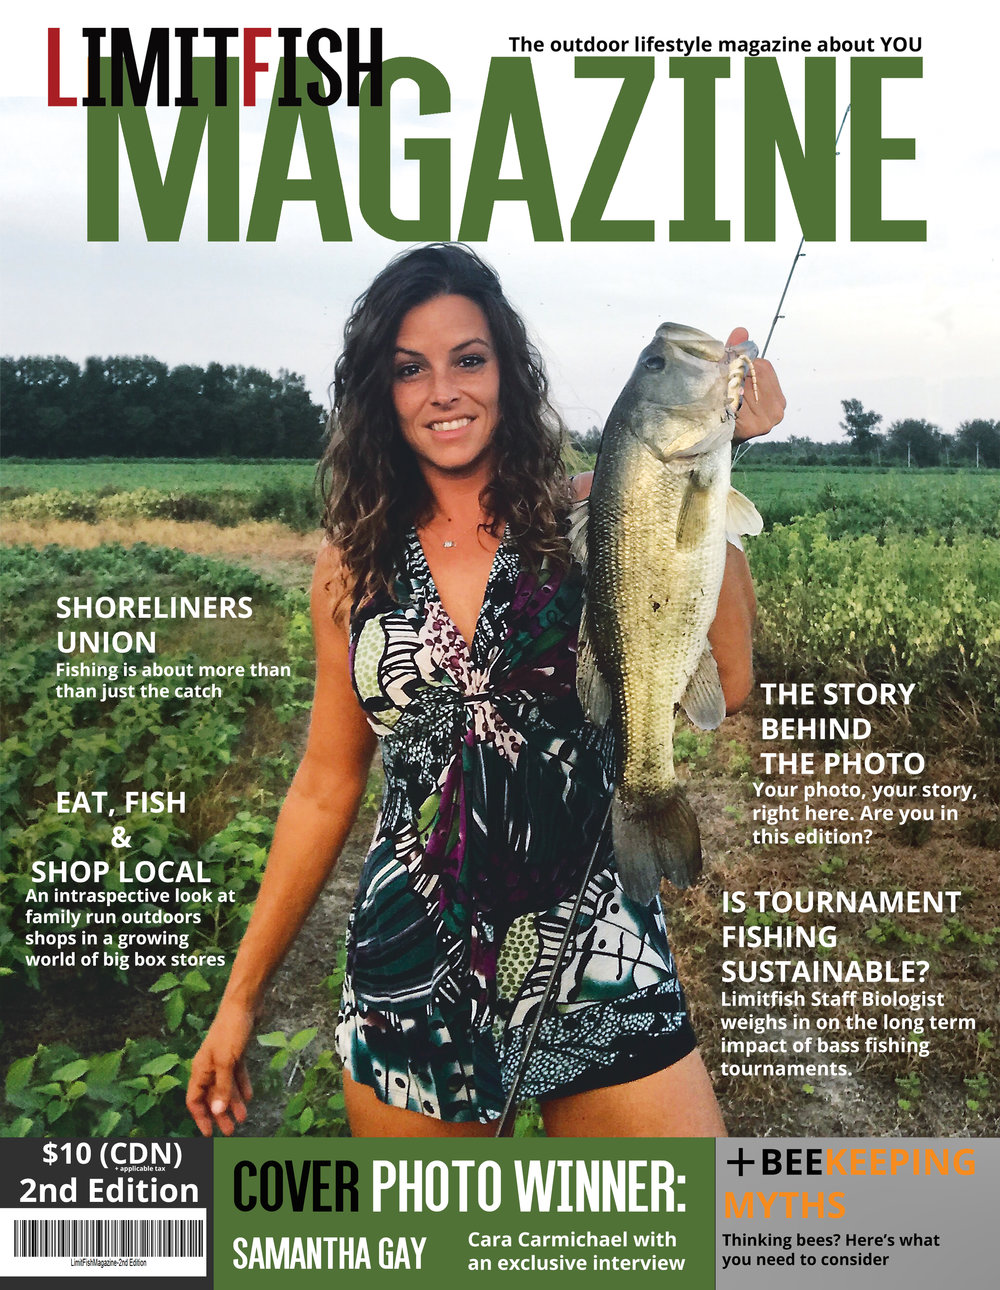 Limitfish Magazine 2nd Edition